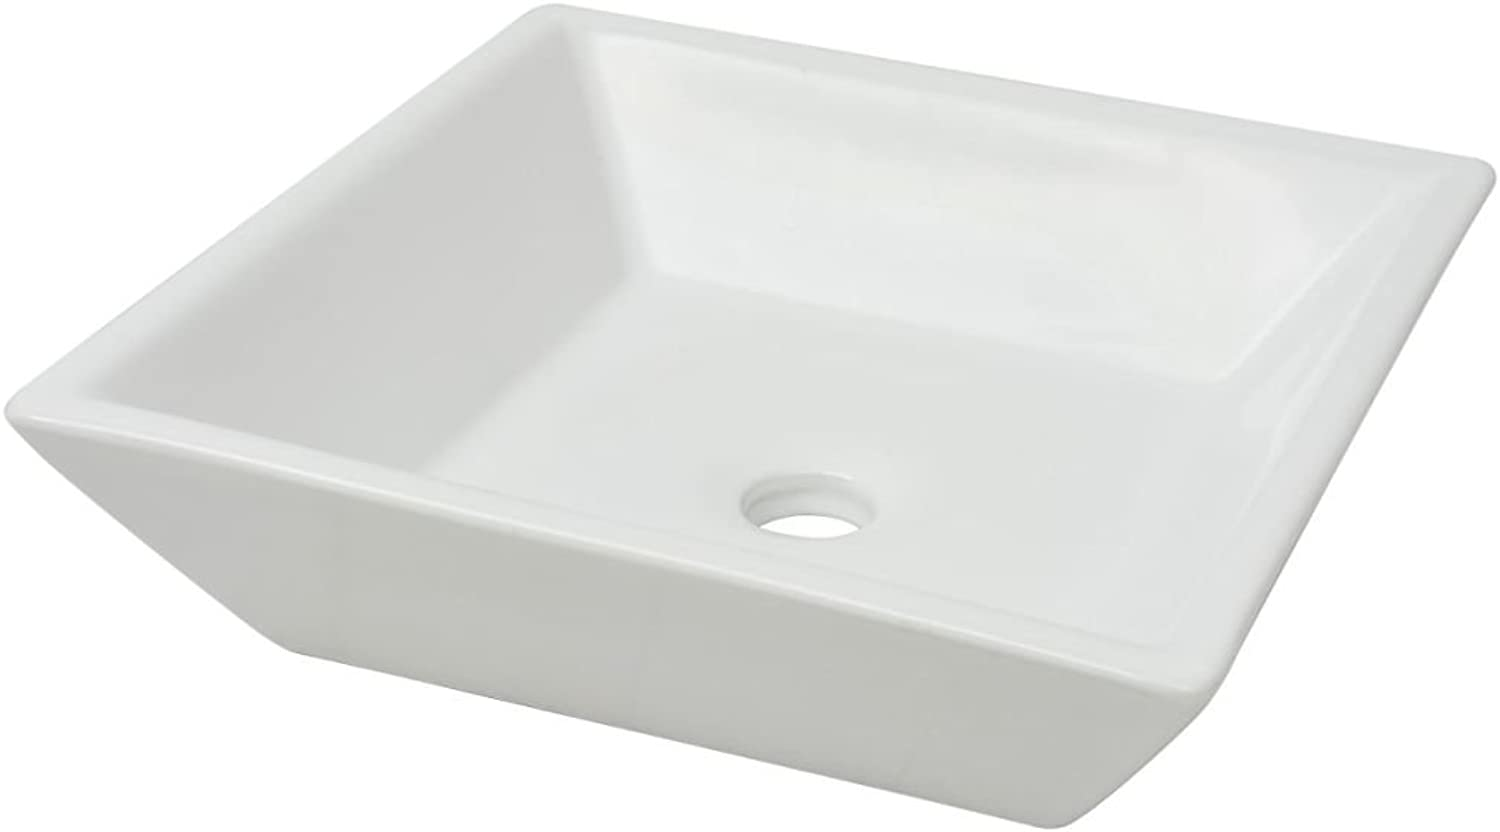 Square Ceramic Sink for Interior Bathroom 41.5 x 41.5 x 12 cm White